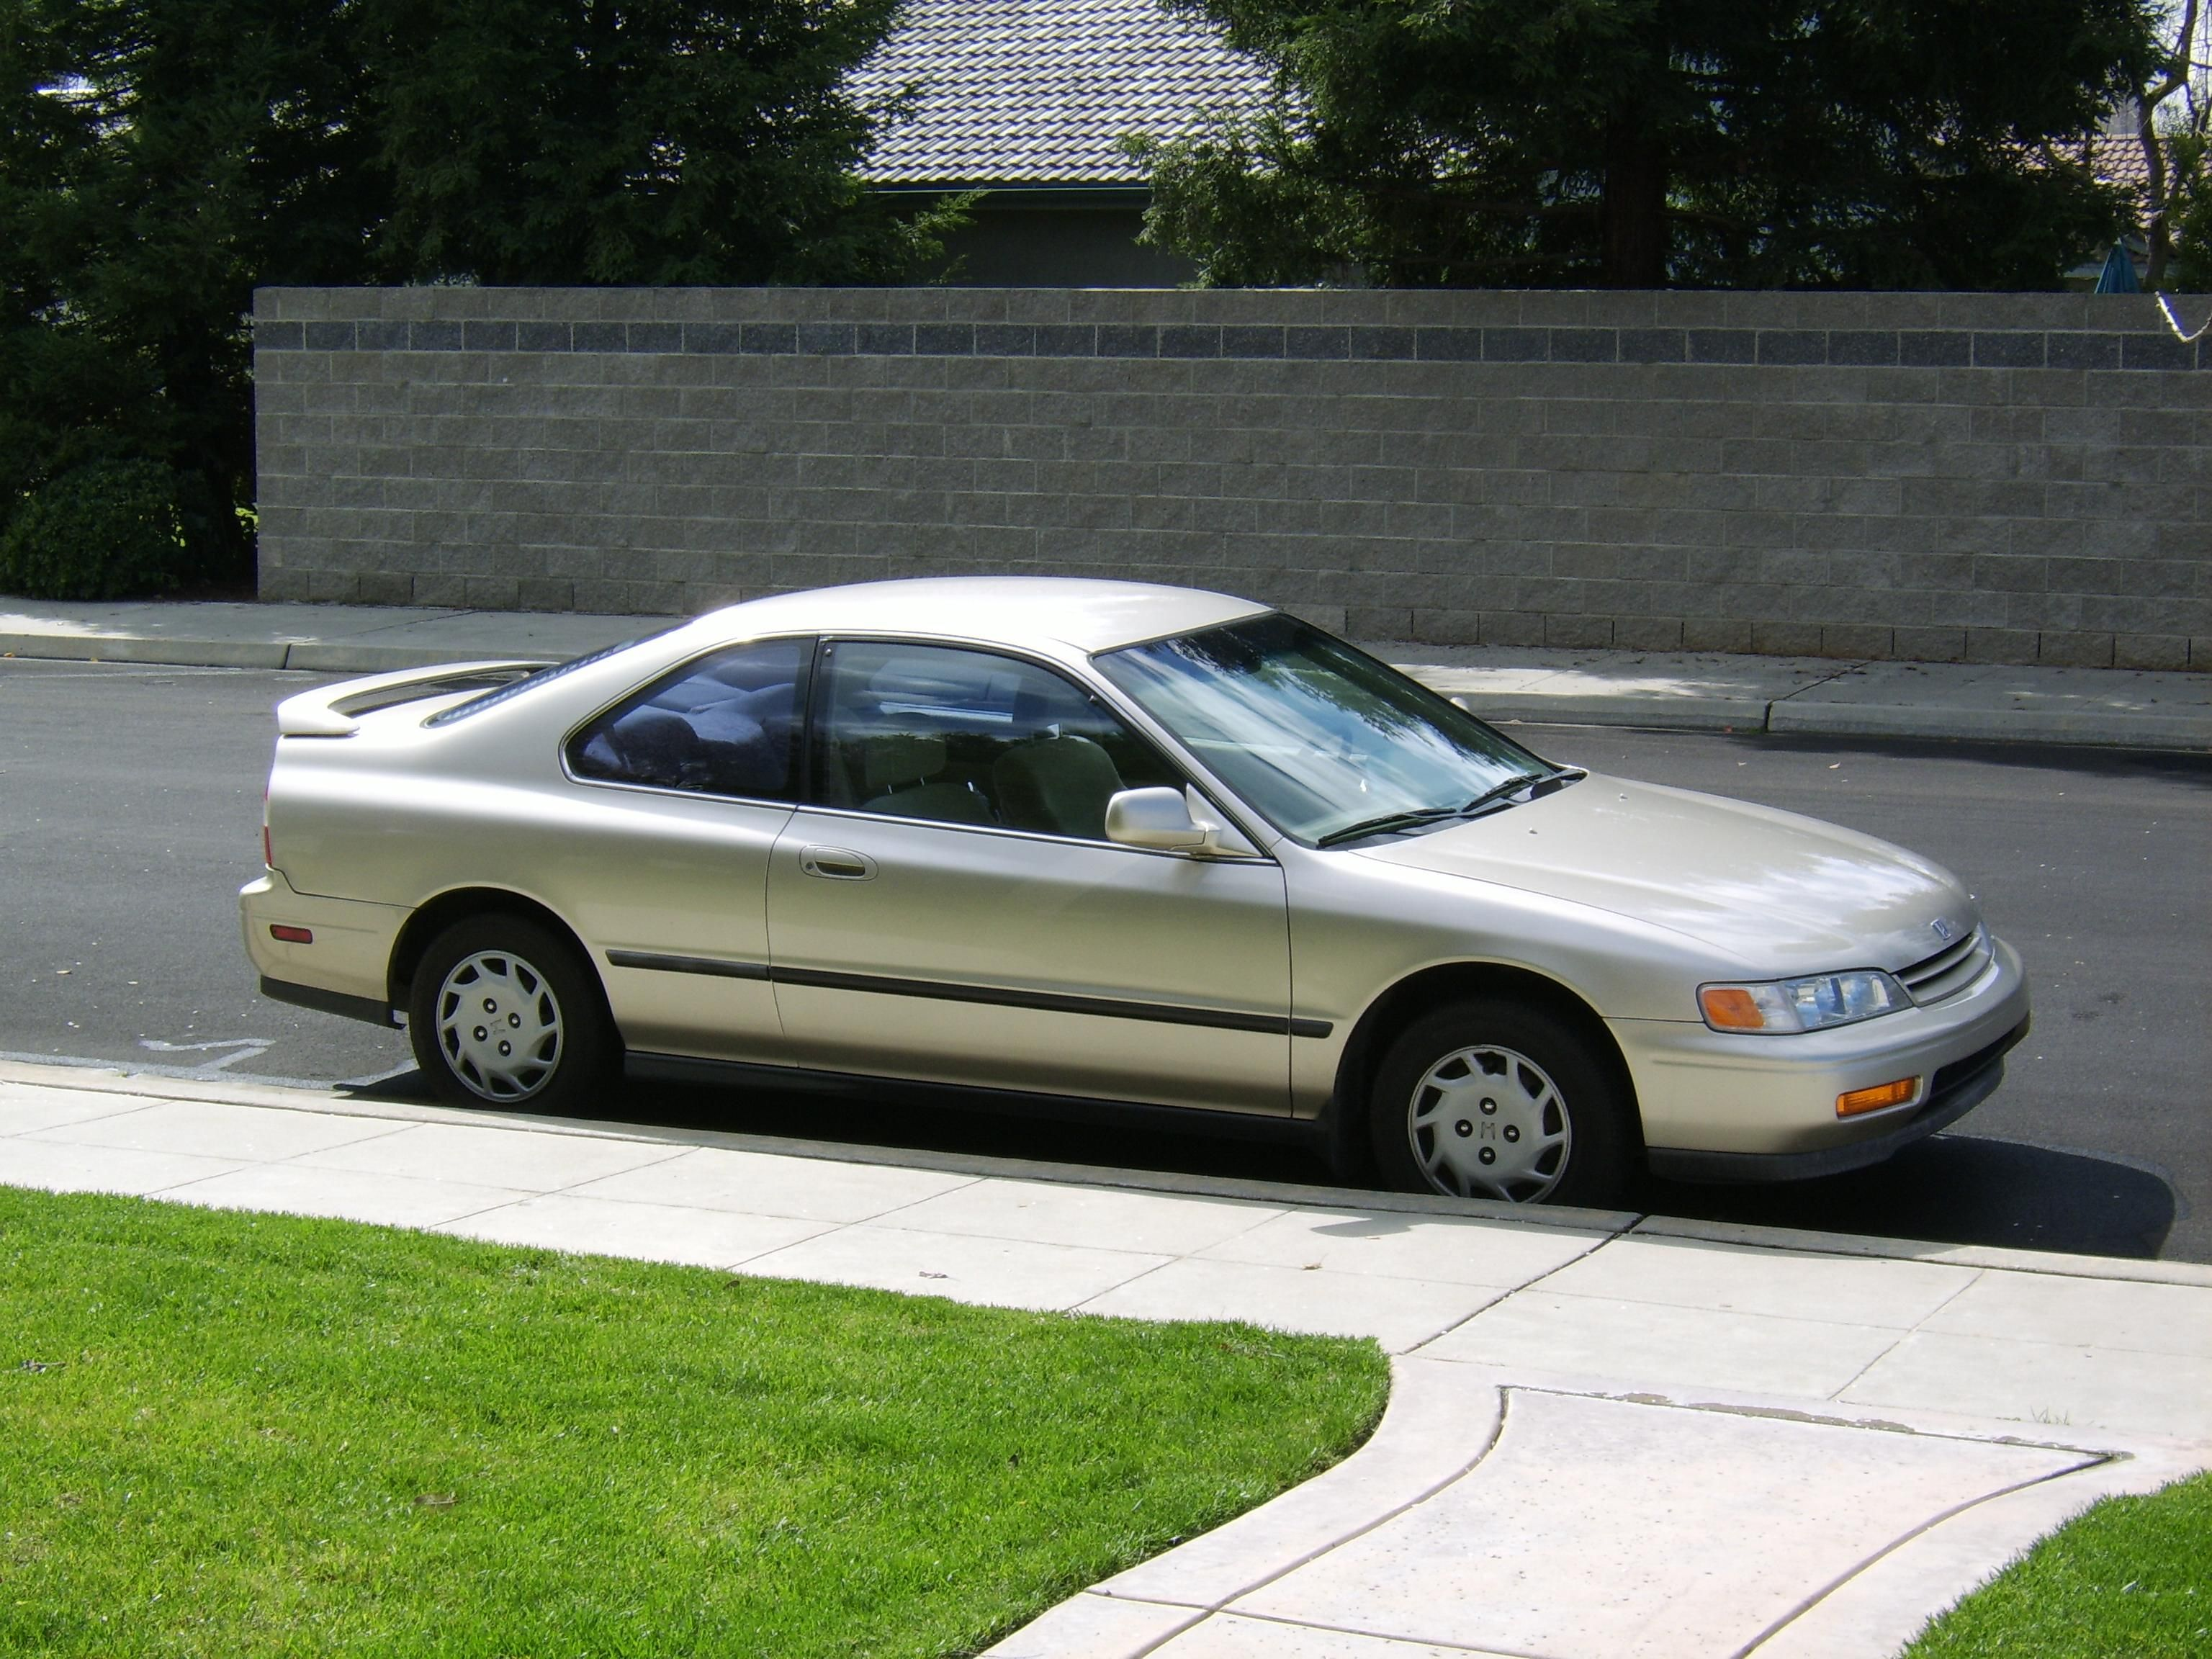 1994 Honda Accord LX. A car like this was given to me